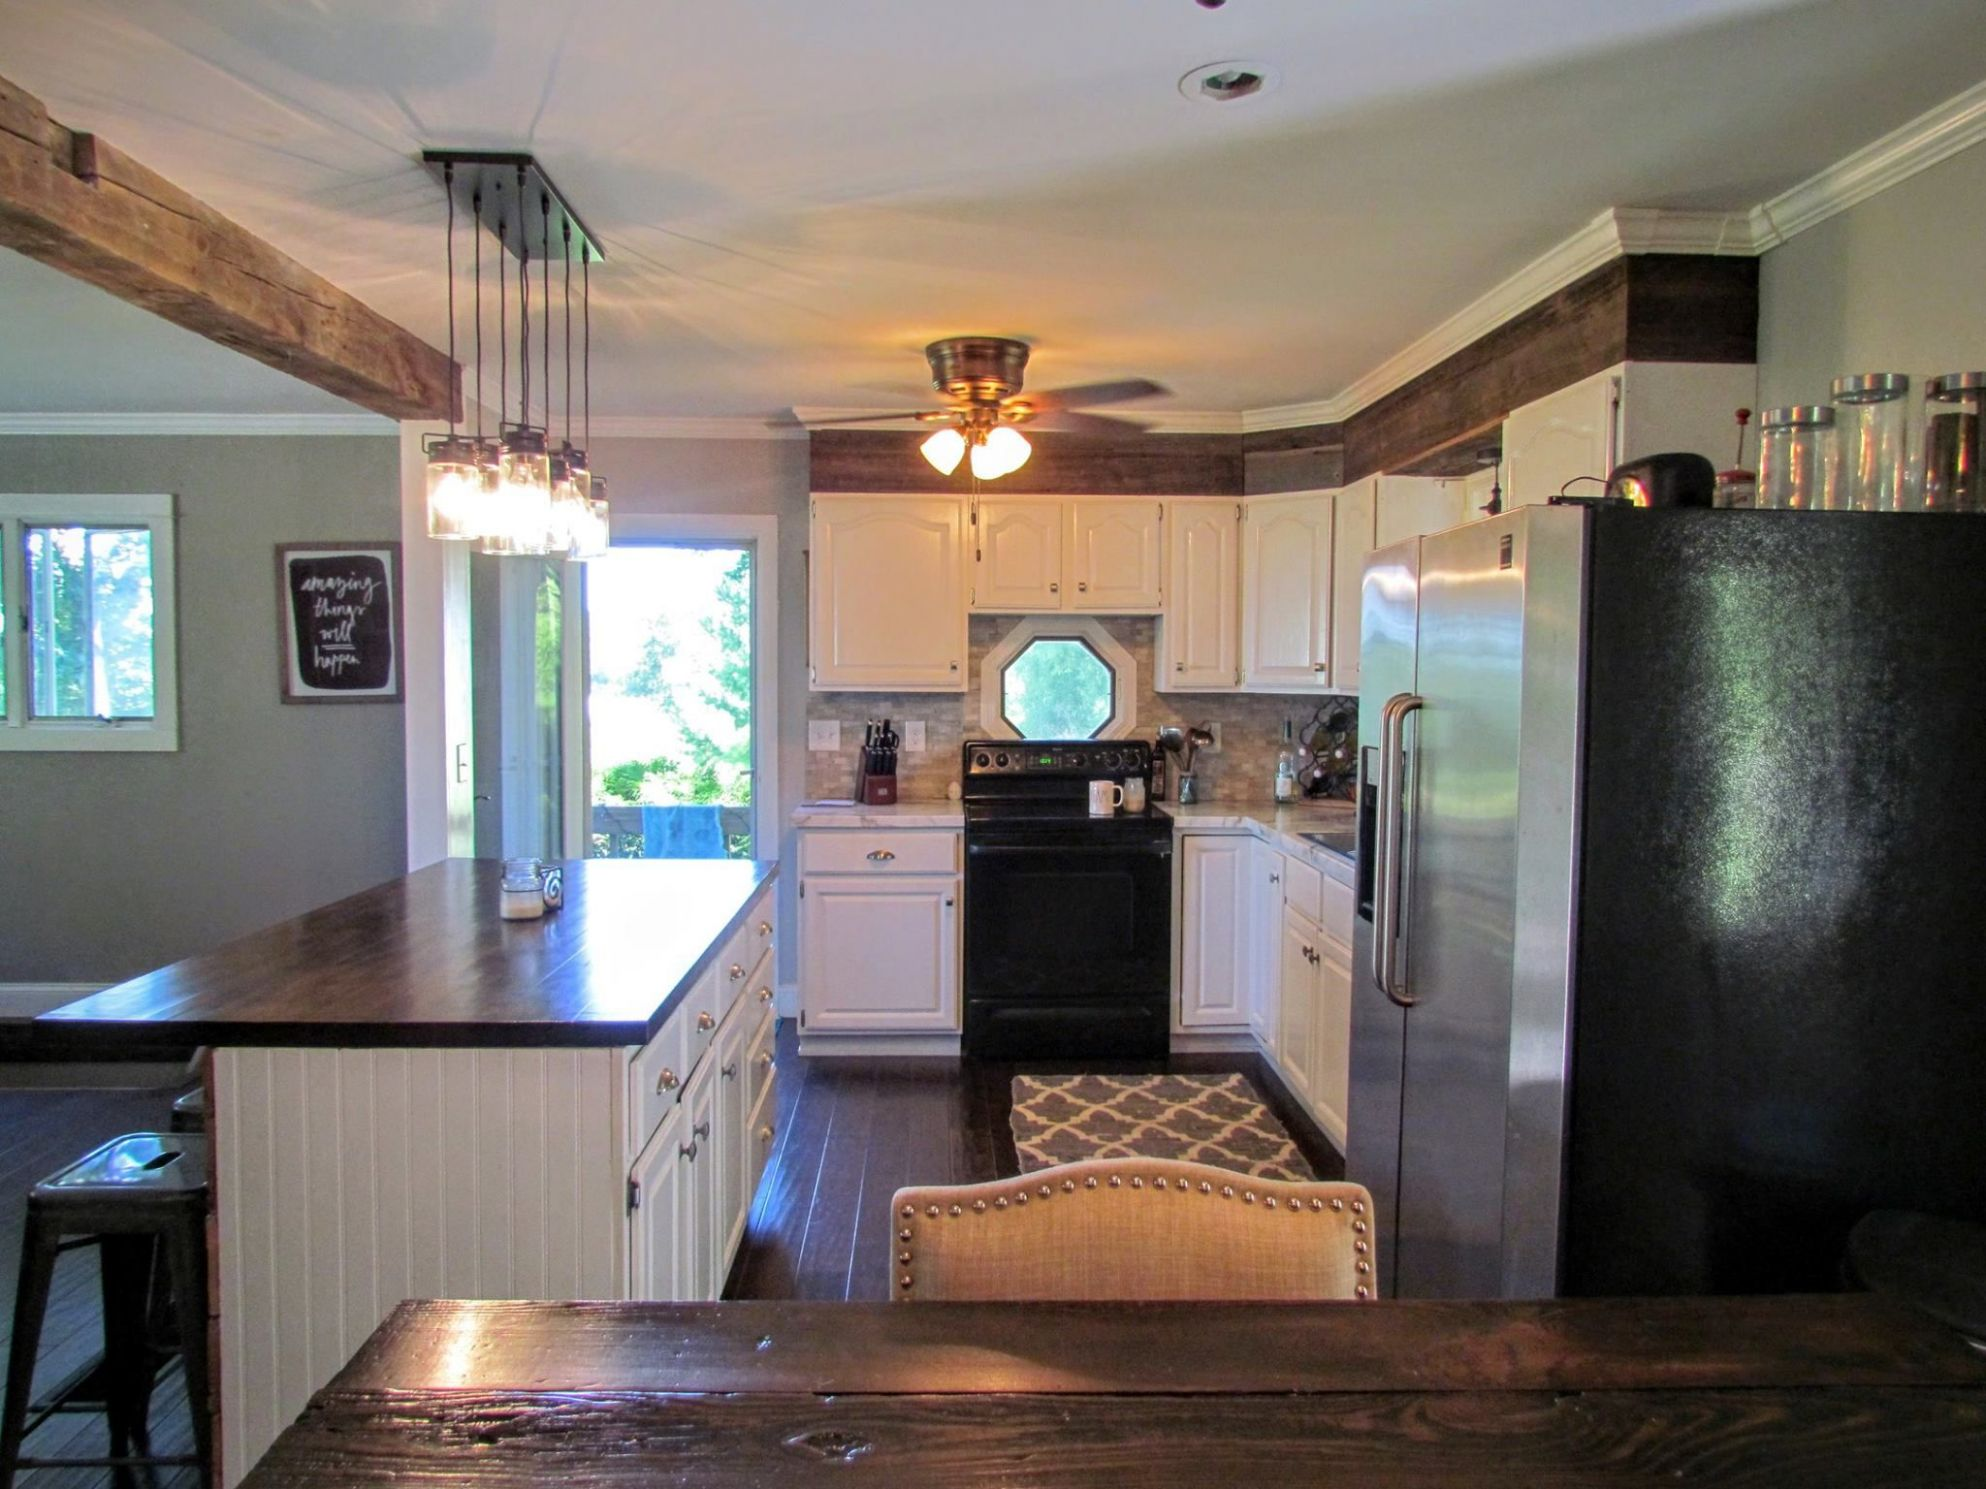 Home Remodel Before & After | Ranch kitchen remodel, Kitchen ..